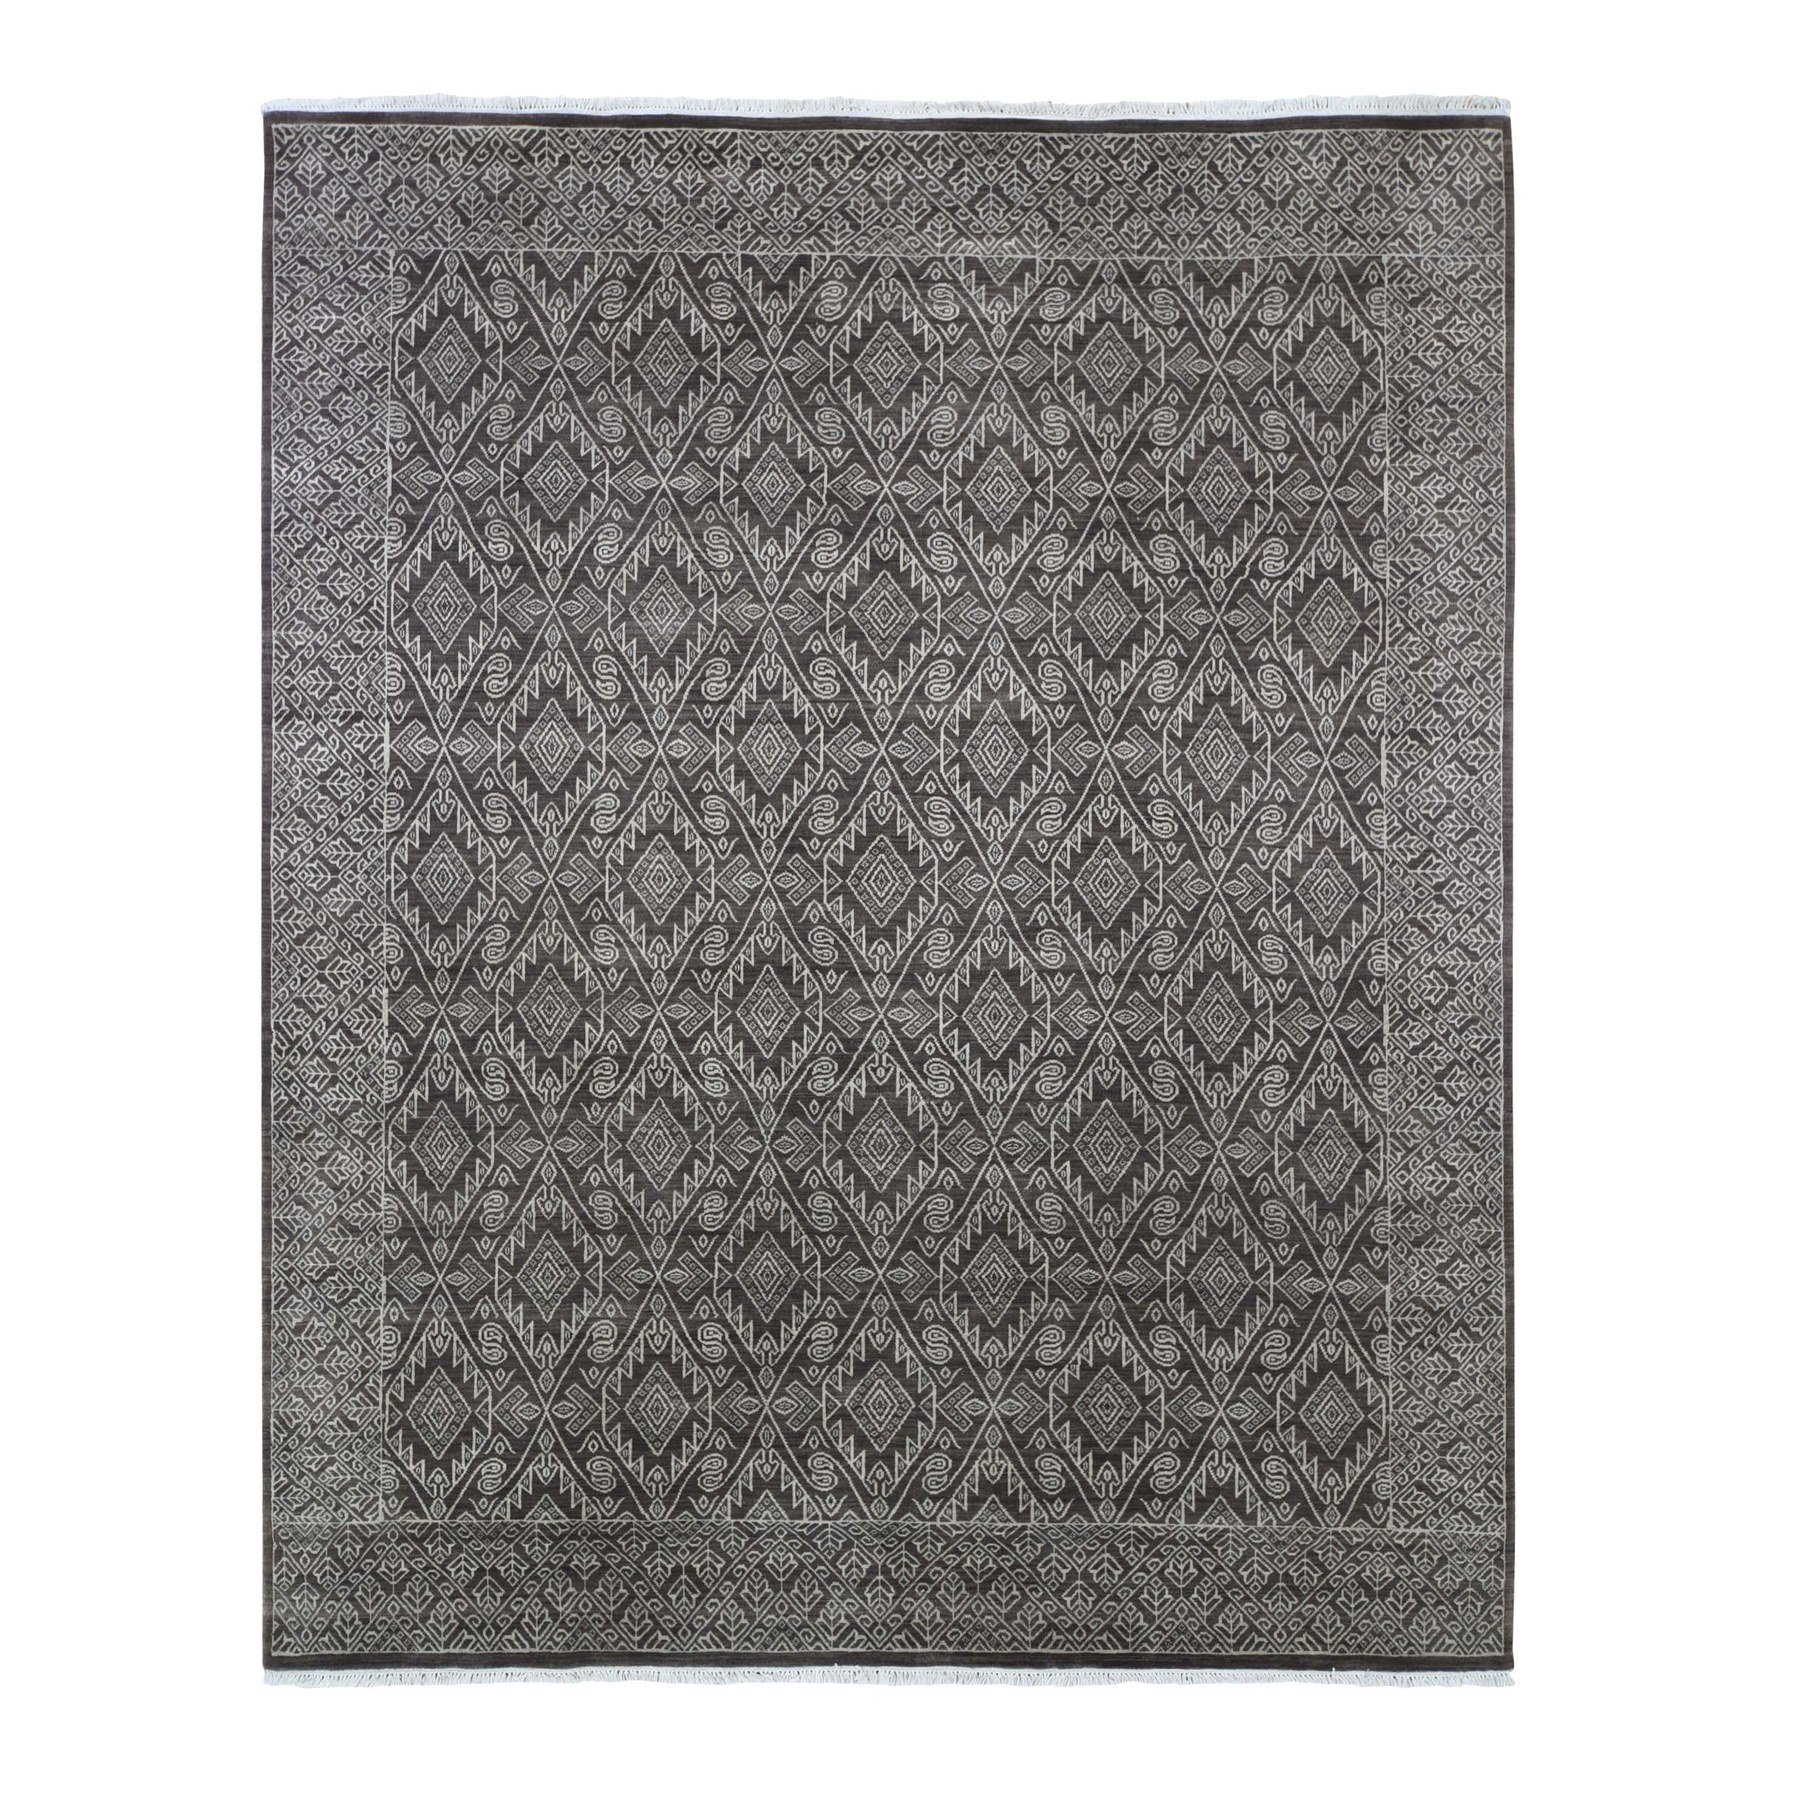 Nomadic And Village Collection Hand Knotted Brown Rug No: 1133422